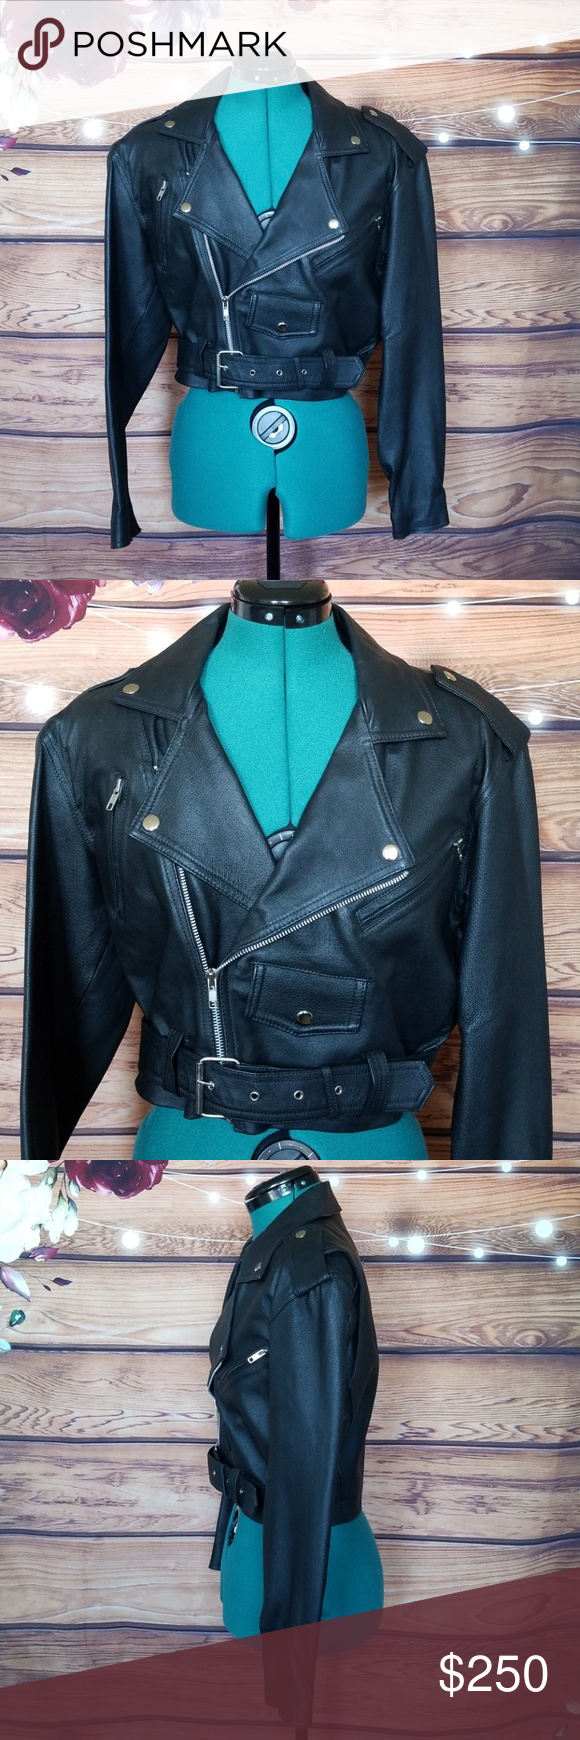 ⚡FLASH SALE! Wilsons Leather Black Moto Jacket Leather